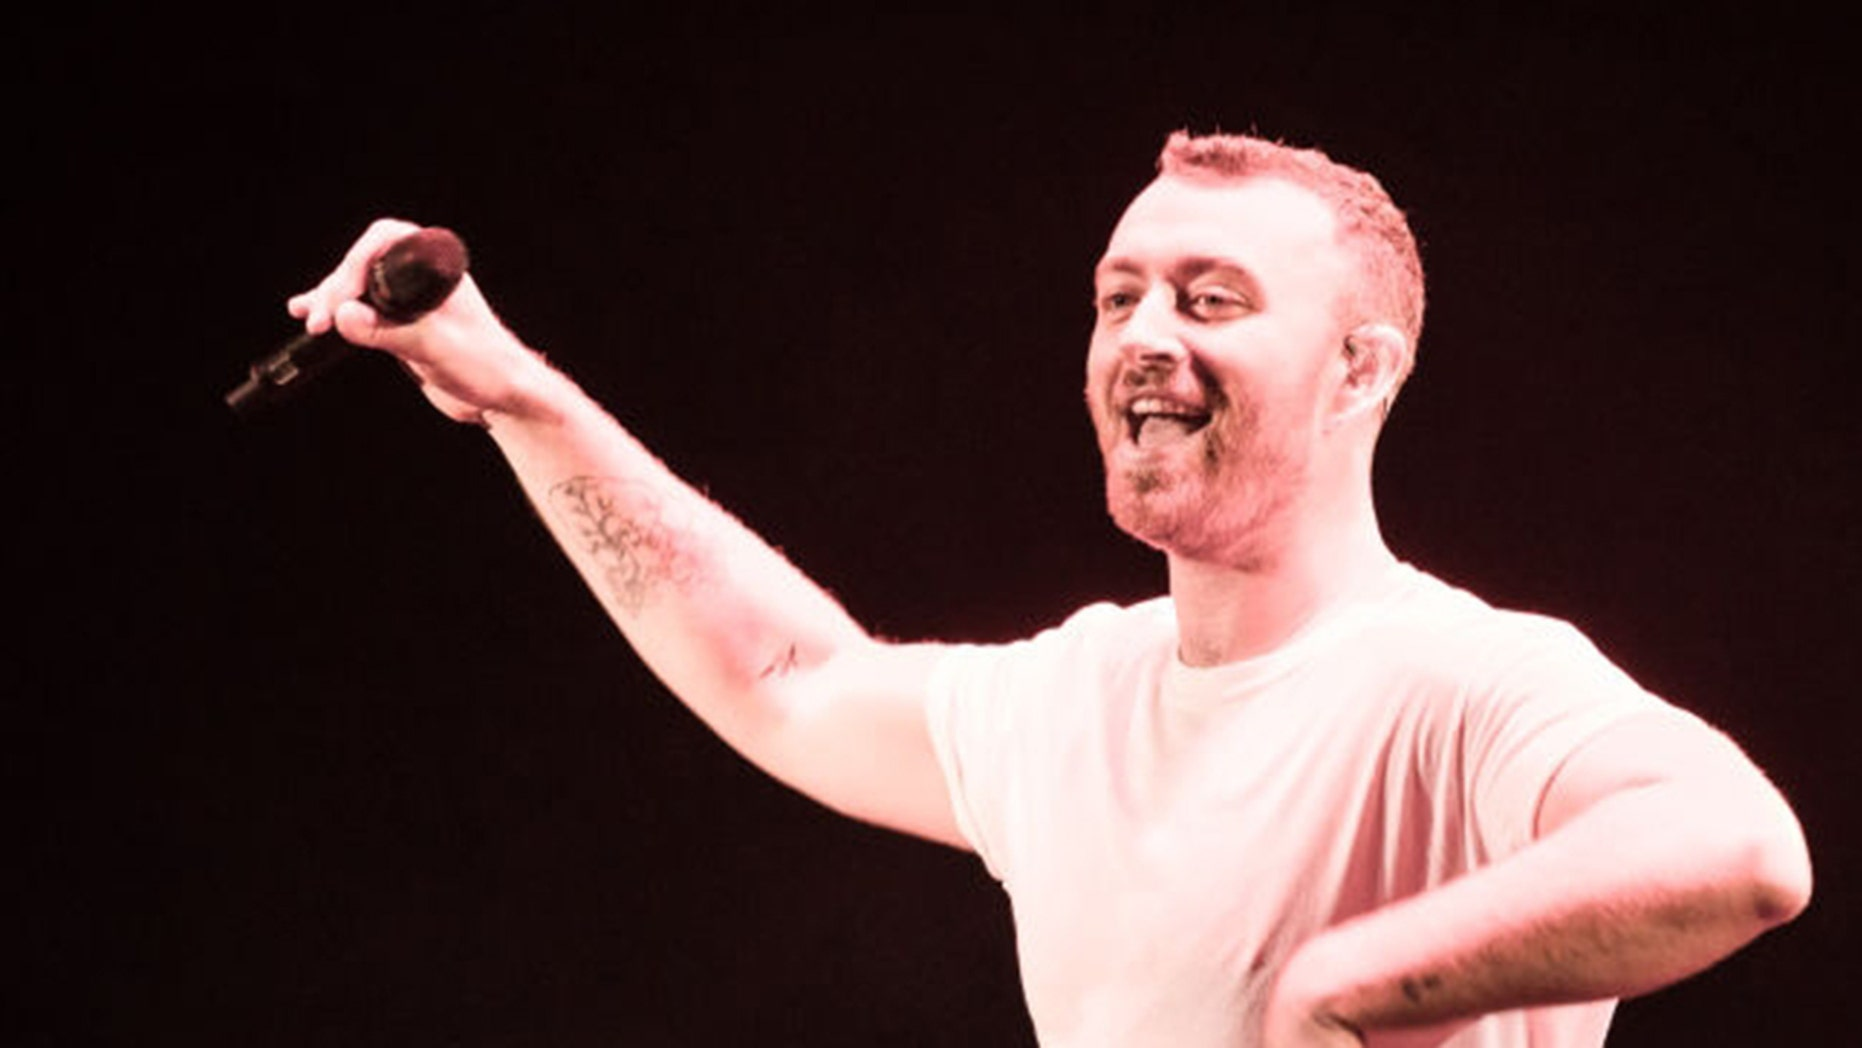 """In a newly-released interview on Friday, artist Sam Smith reportedly divulged that he considers himself to be """"non-binary,"""" and explained how he came to this realization."""